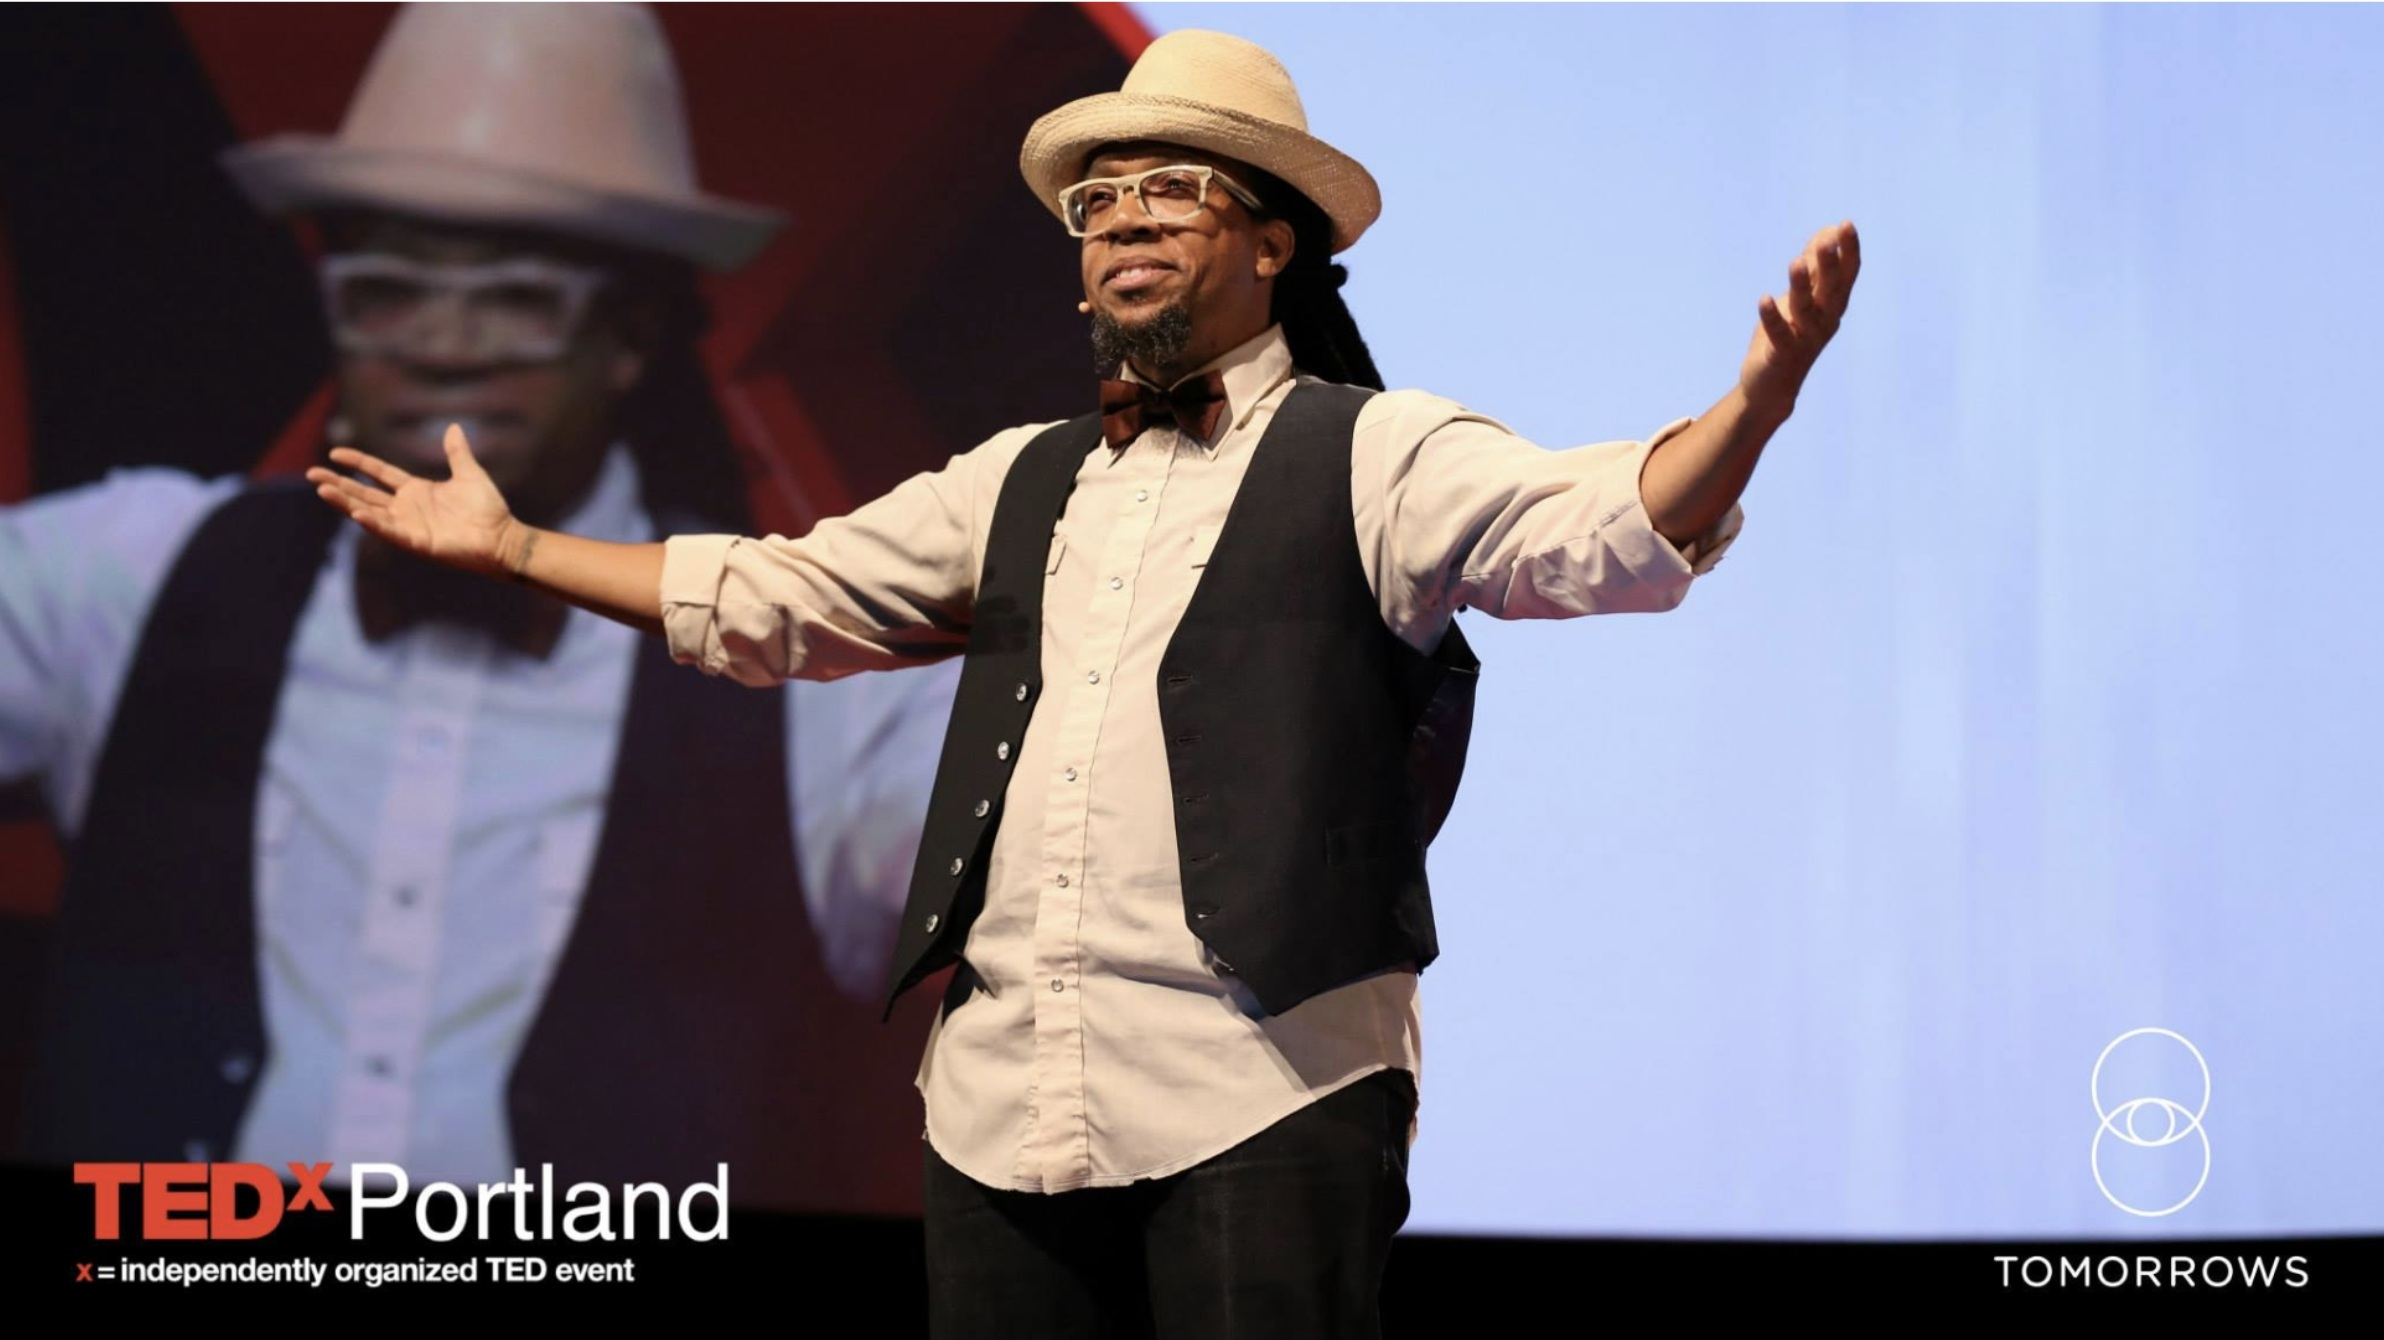 PUBLIC SPEAKING - With a name like Speech, you know this brother can speak! Coming off an explosive TEDx Talk in Portland about race and our sacred serial numbers, Speech speaks truth to power. His heart is to serve and when he does a unique mixture of performing and speaking, its obvious he's here to serve us all.BOOKINGS →